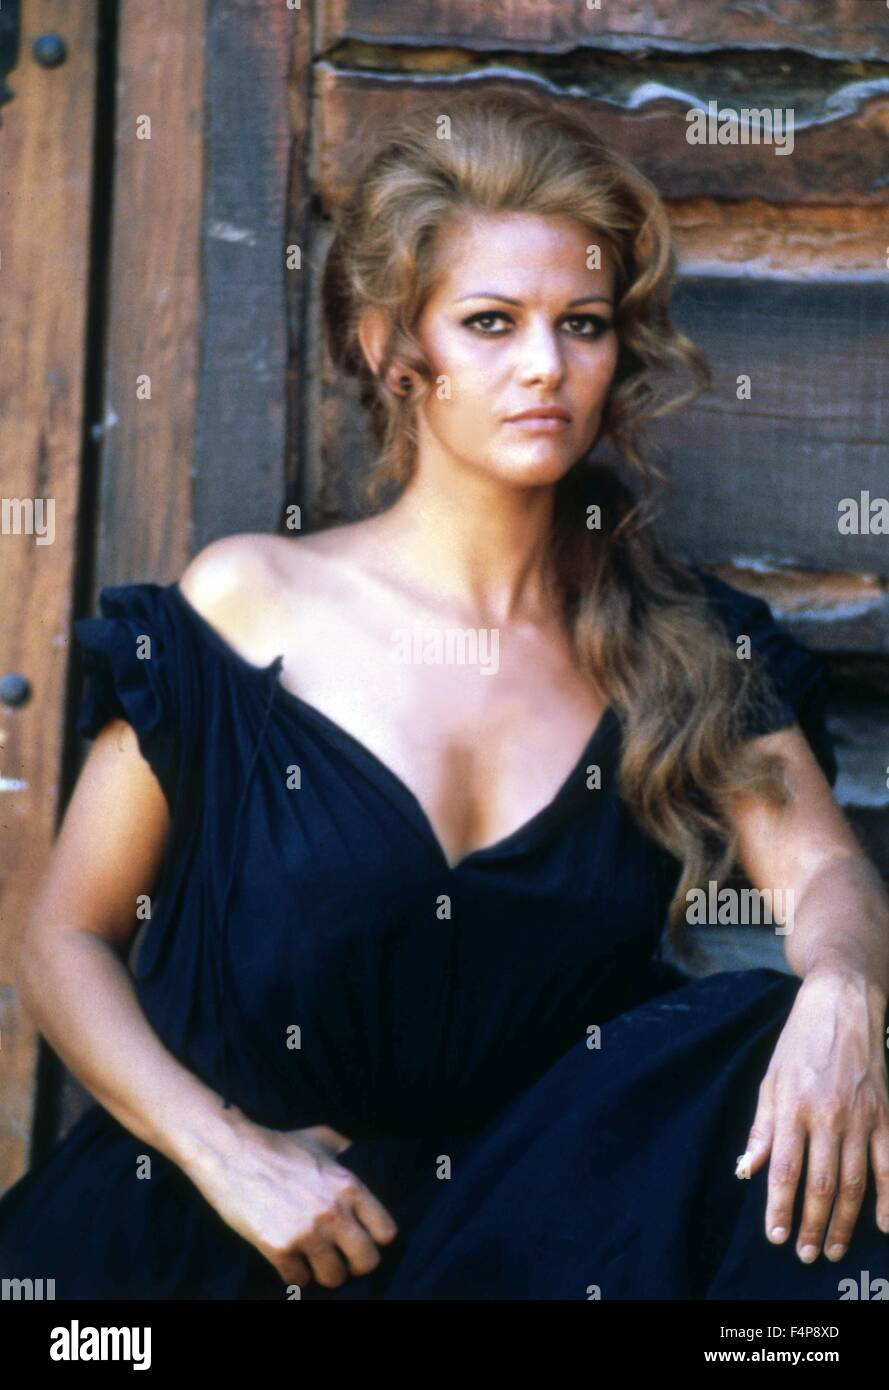 Rita Cardinale Nude Photos 1